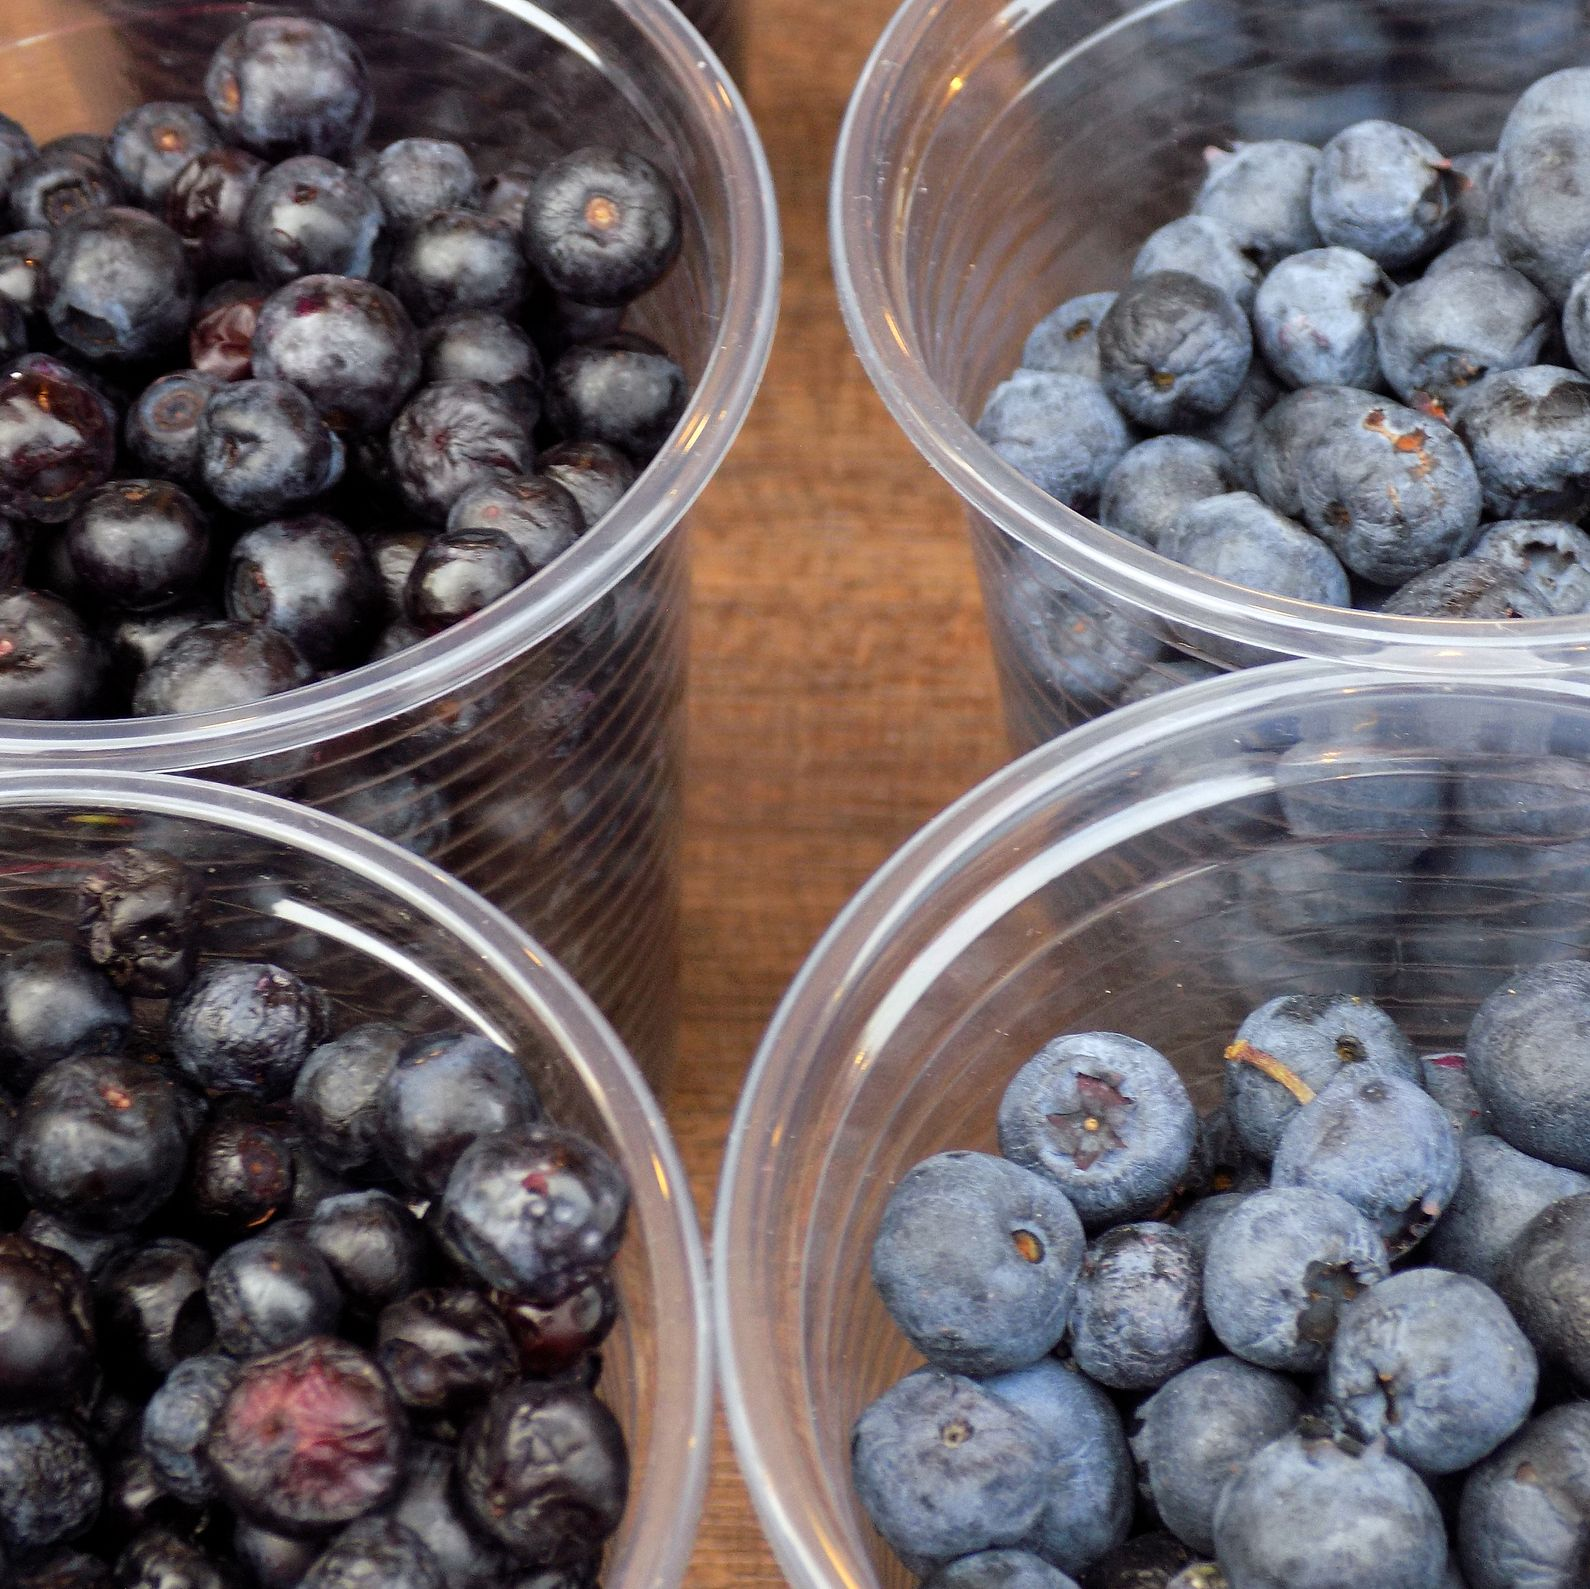 Two kind of Blueberries in the plastic glasses, on the market stand